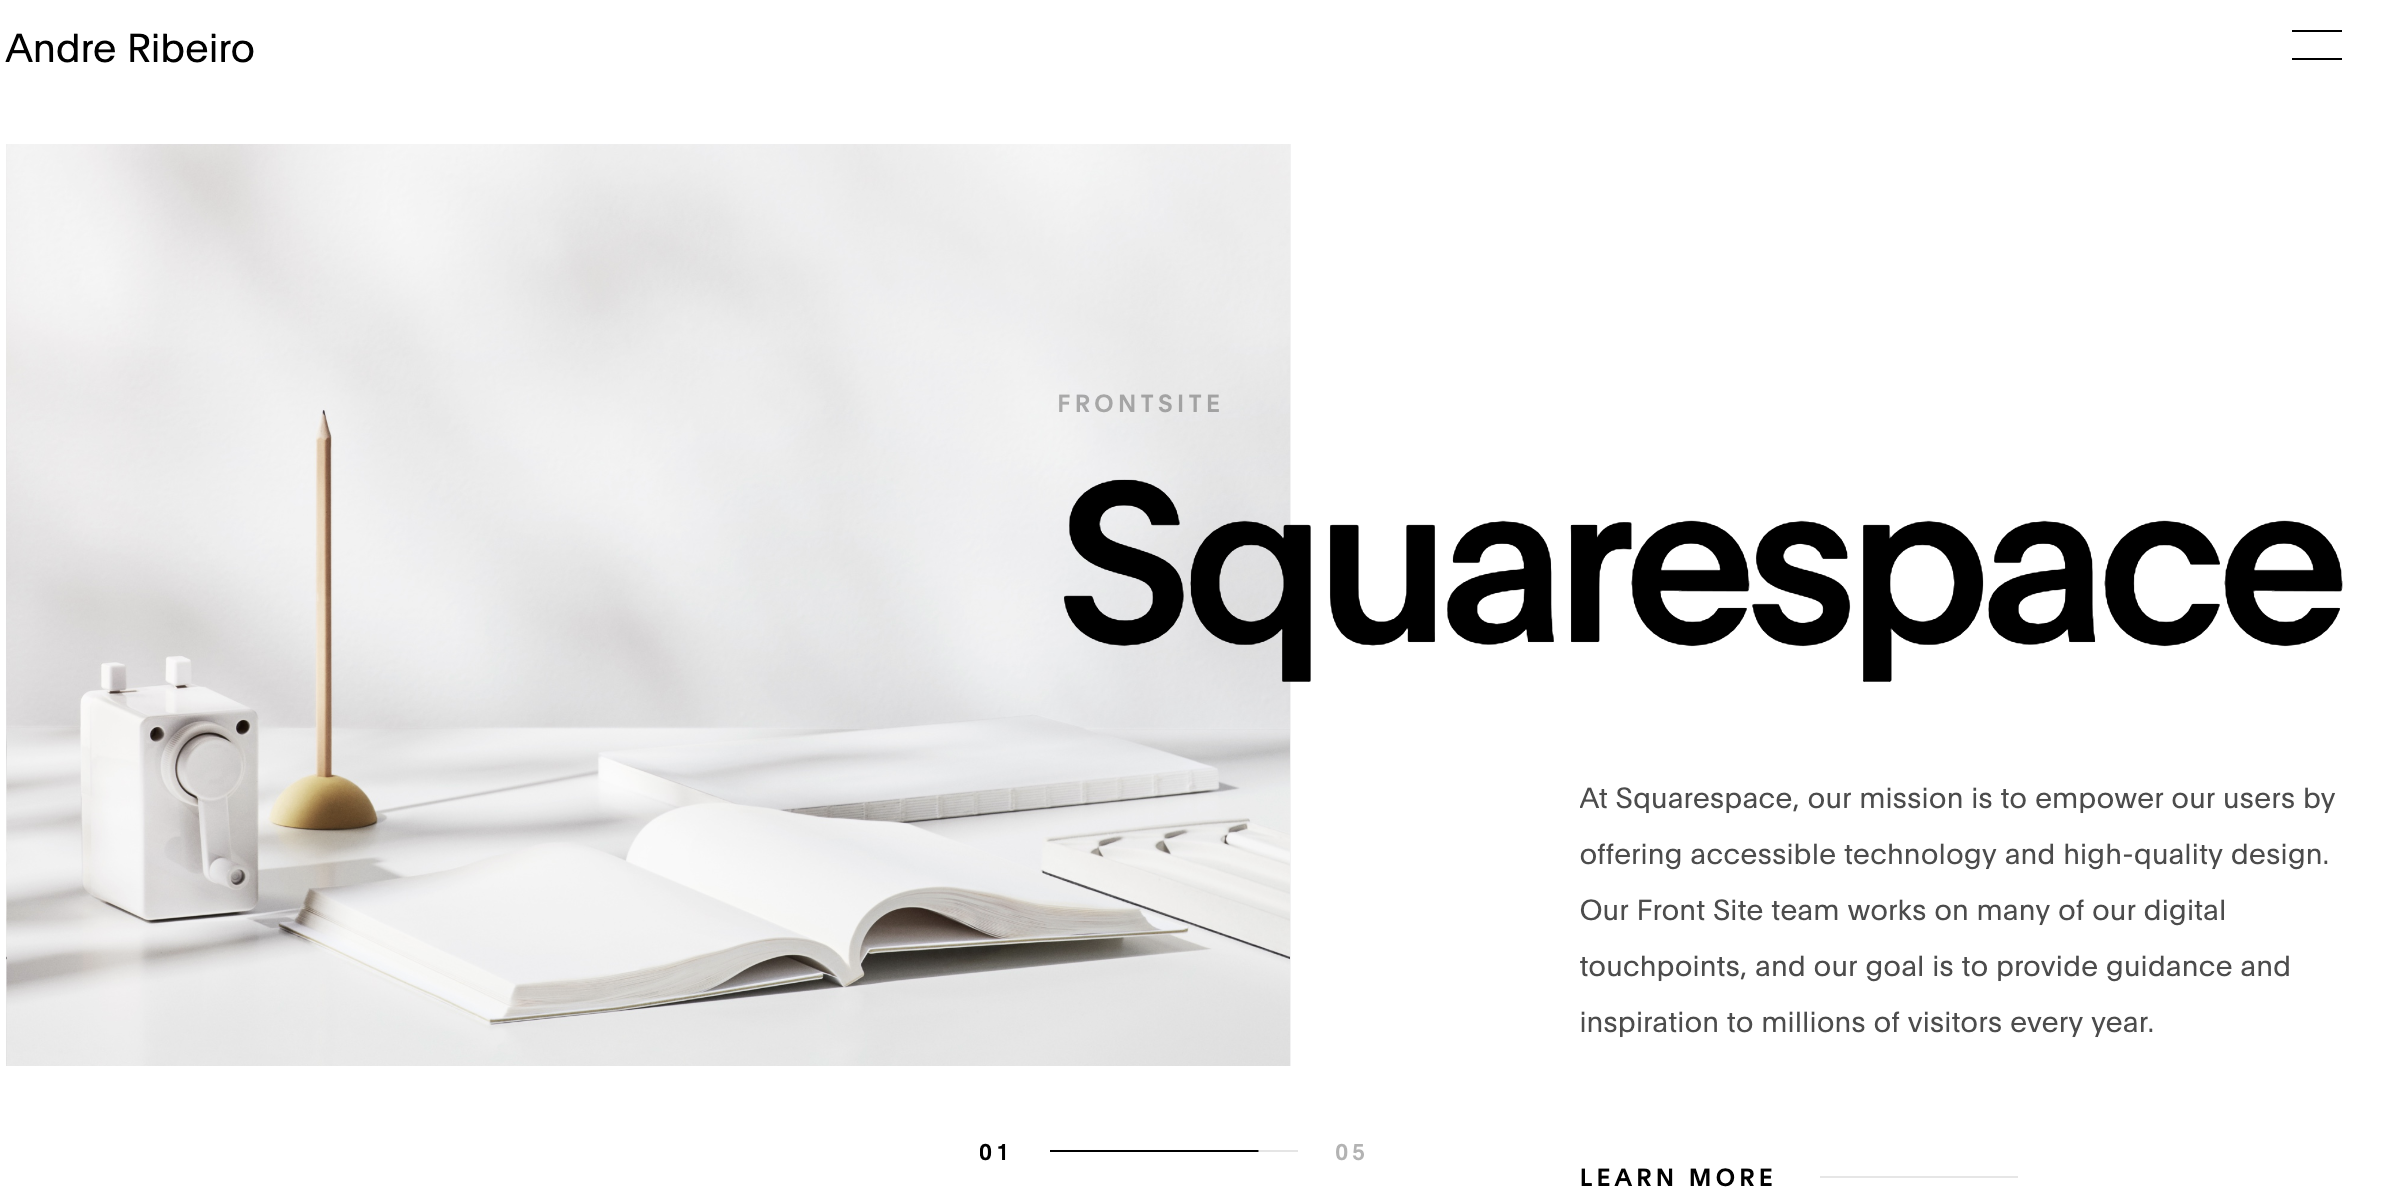 Andre lead the design efforts of  Squarespace Visual Design  team.